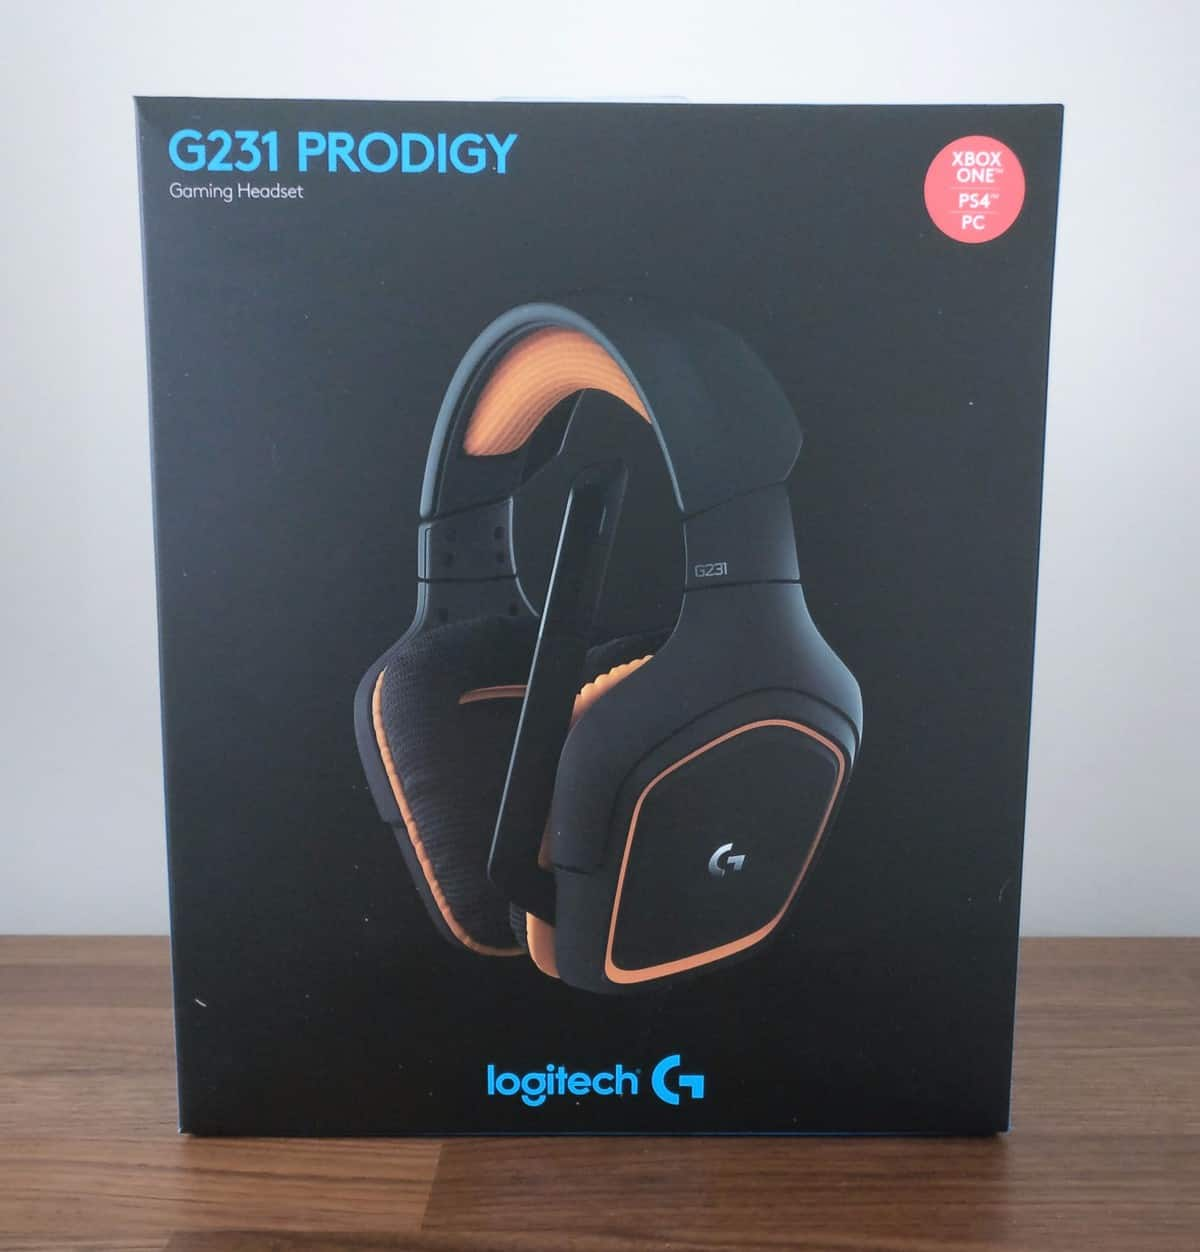 Logitech G231 Gaming Headset Review - The Streaming Blog